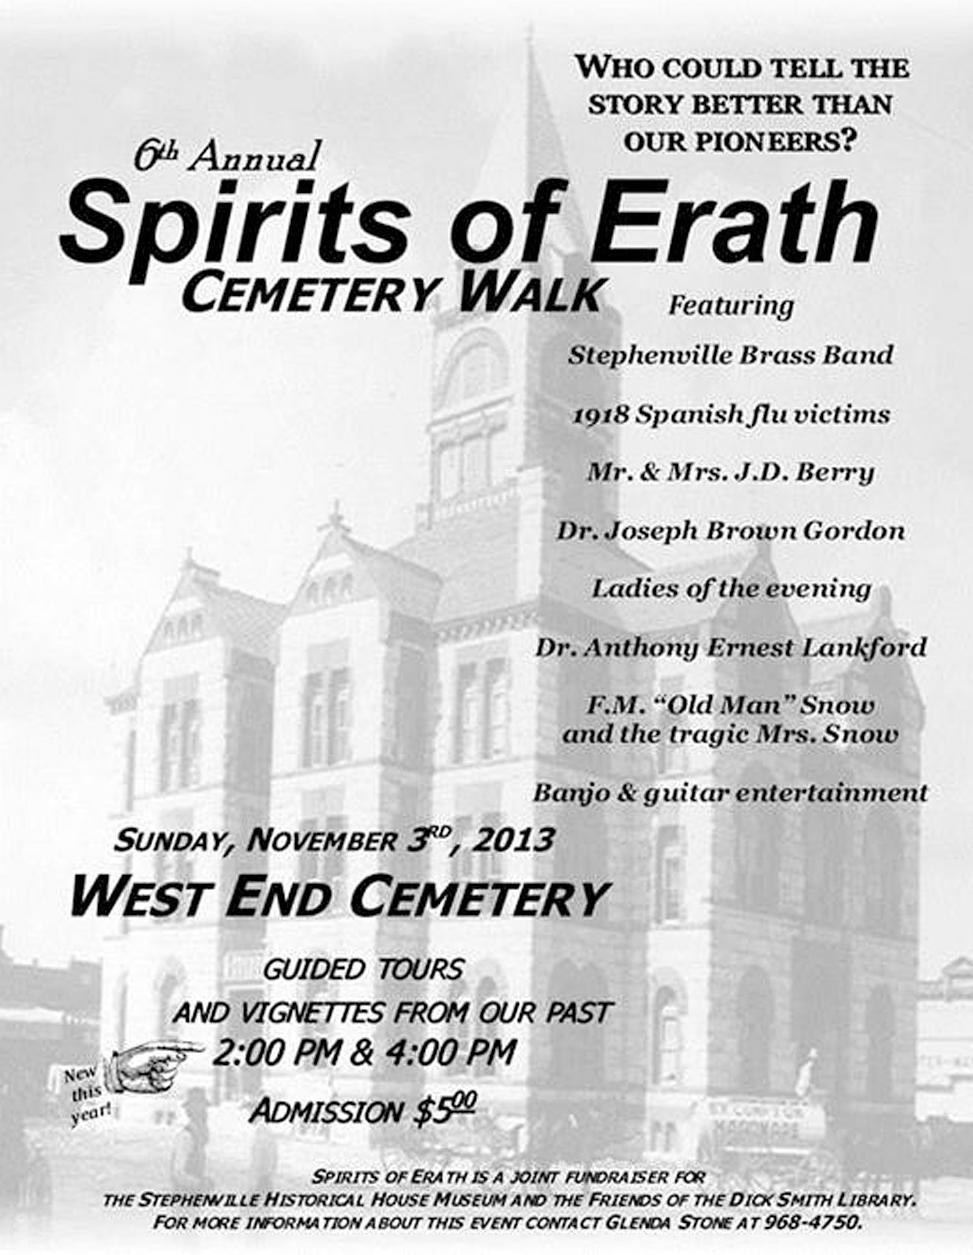 6th Annual Spirits of Erath County Cemetery Walk